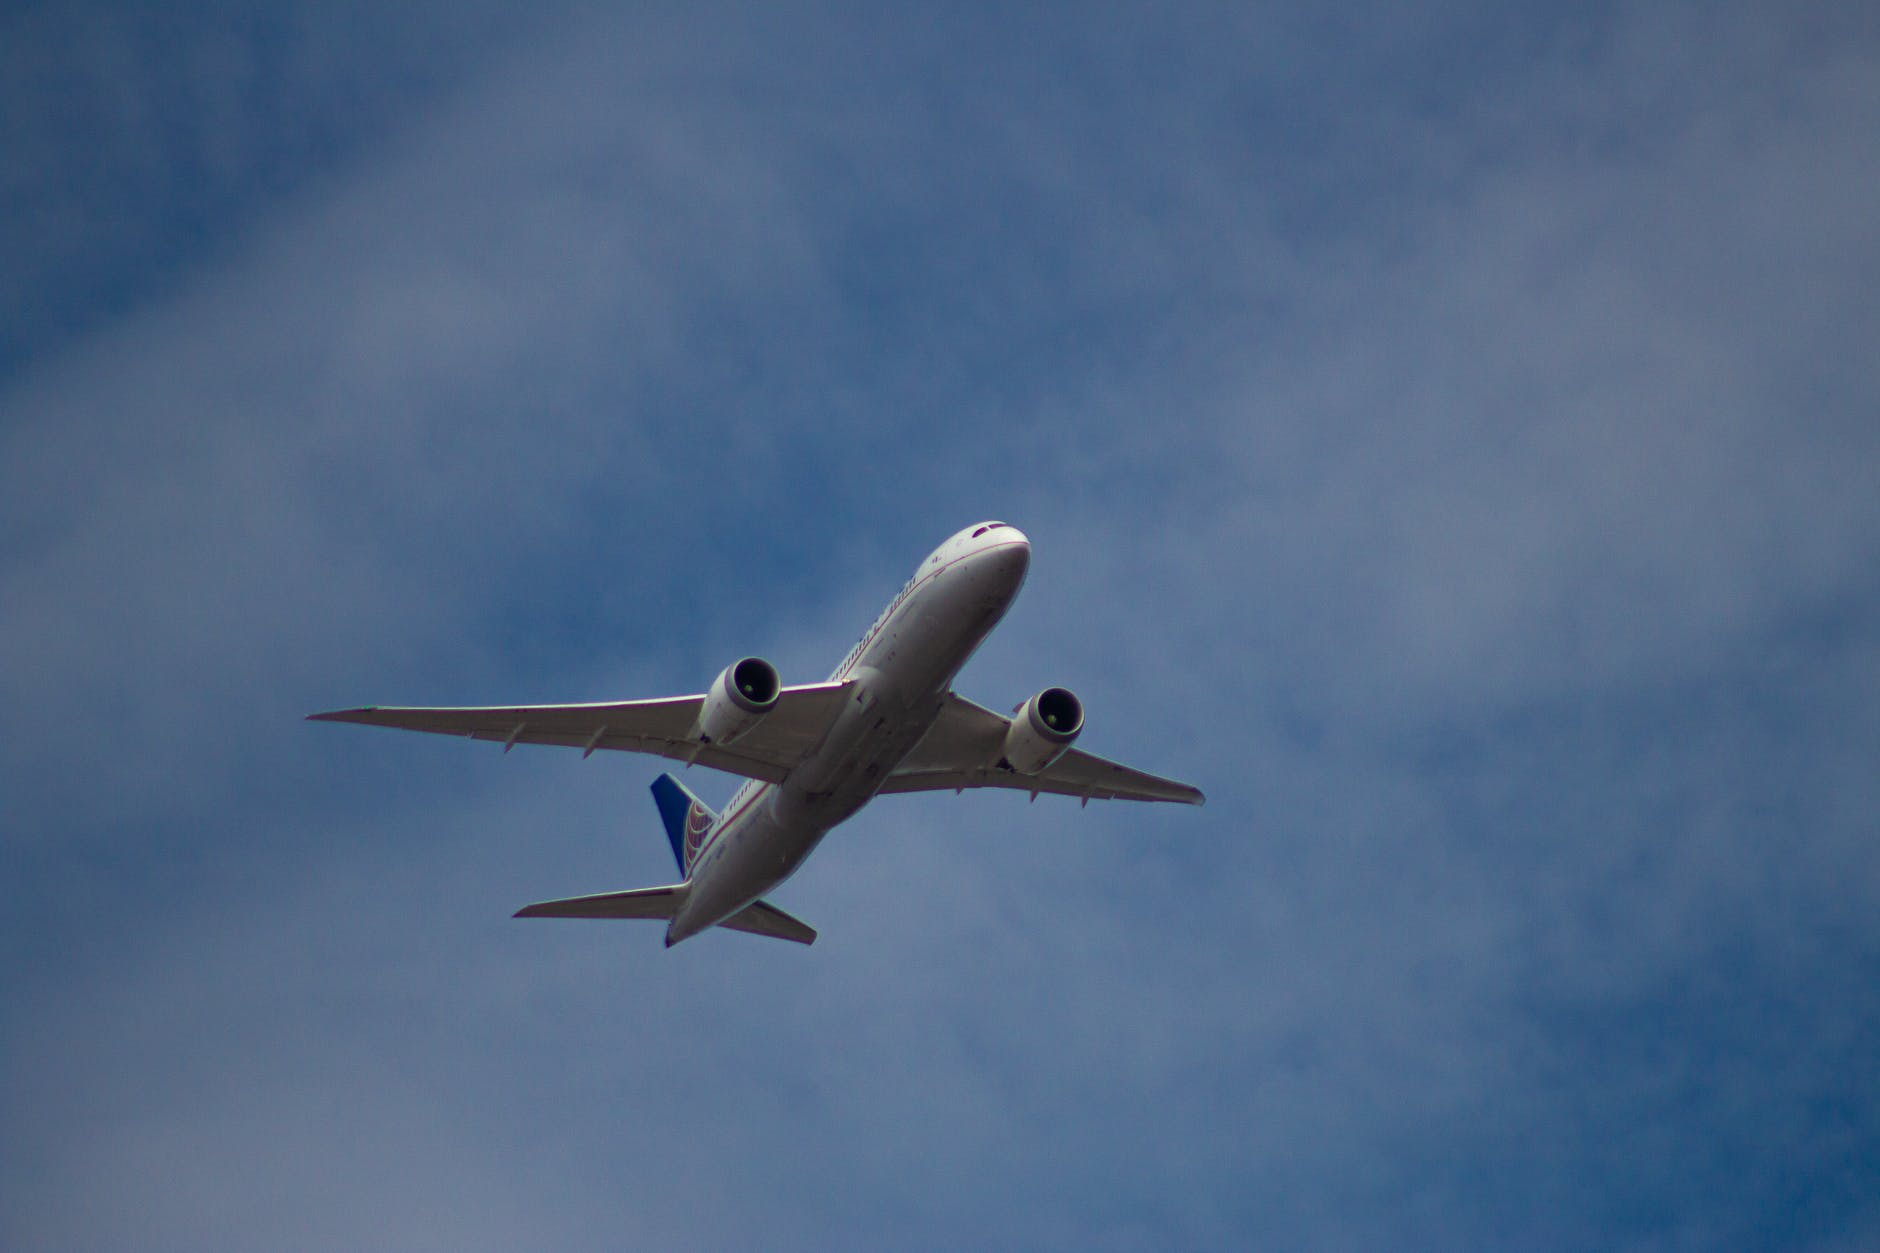 airplane flying high in blue cloudy sky